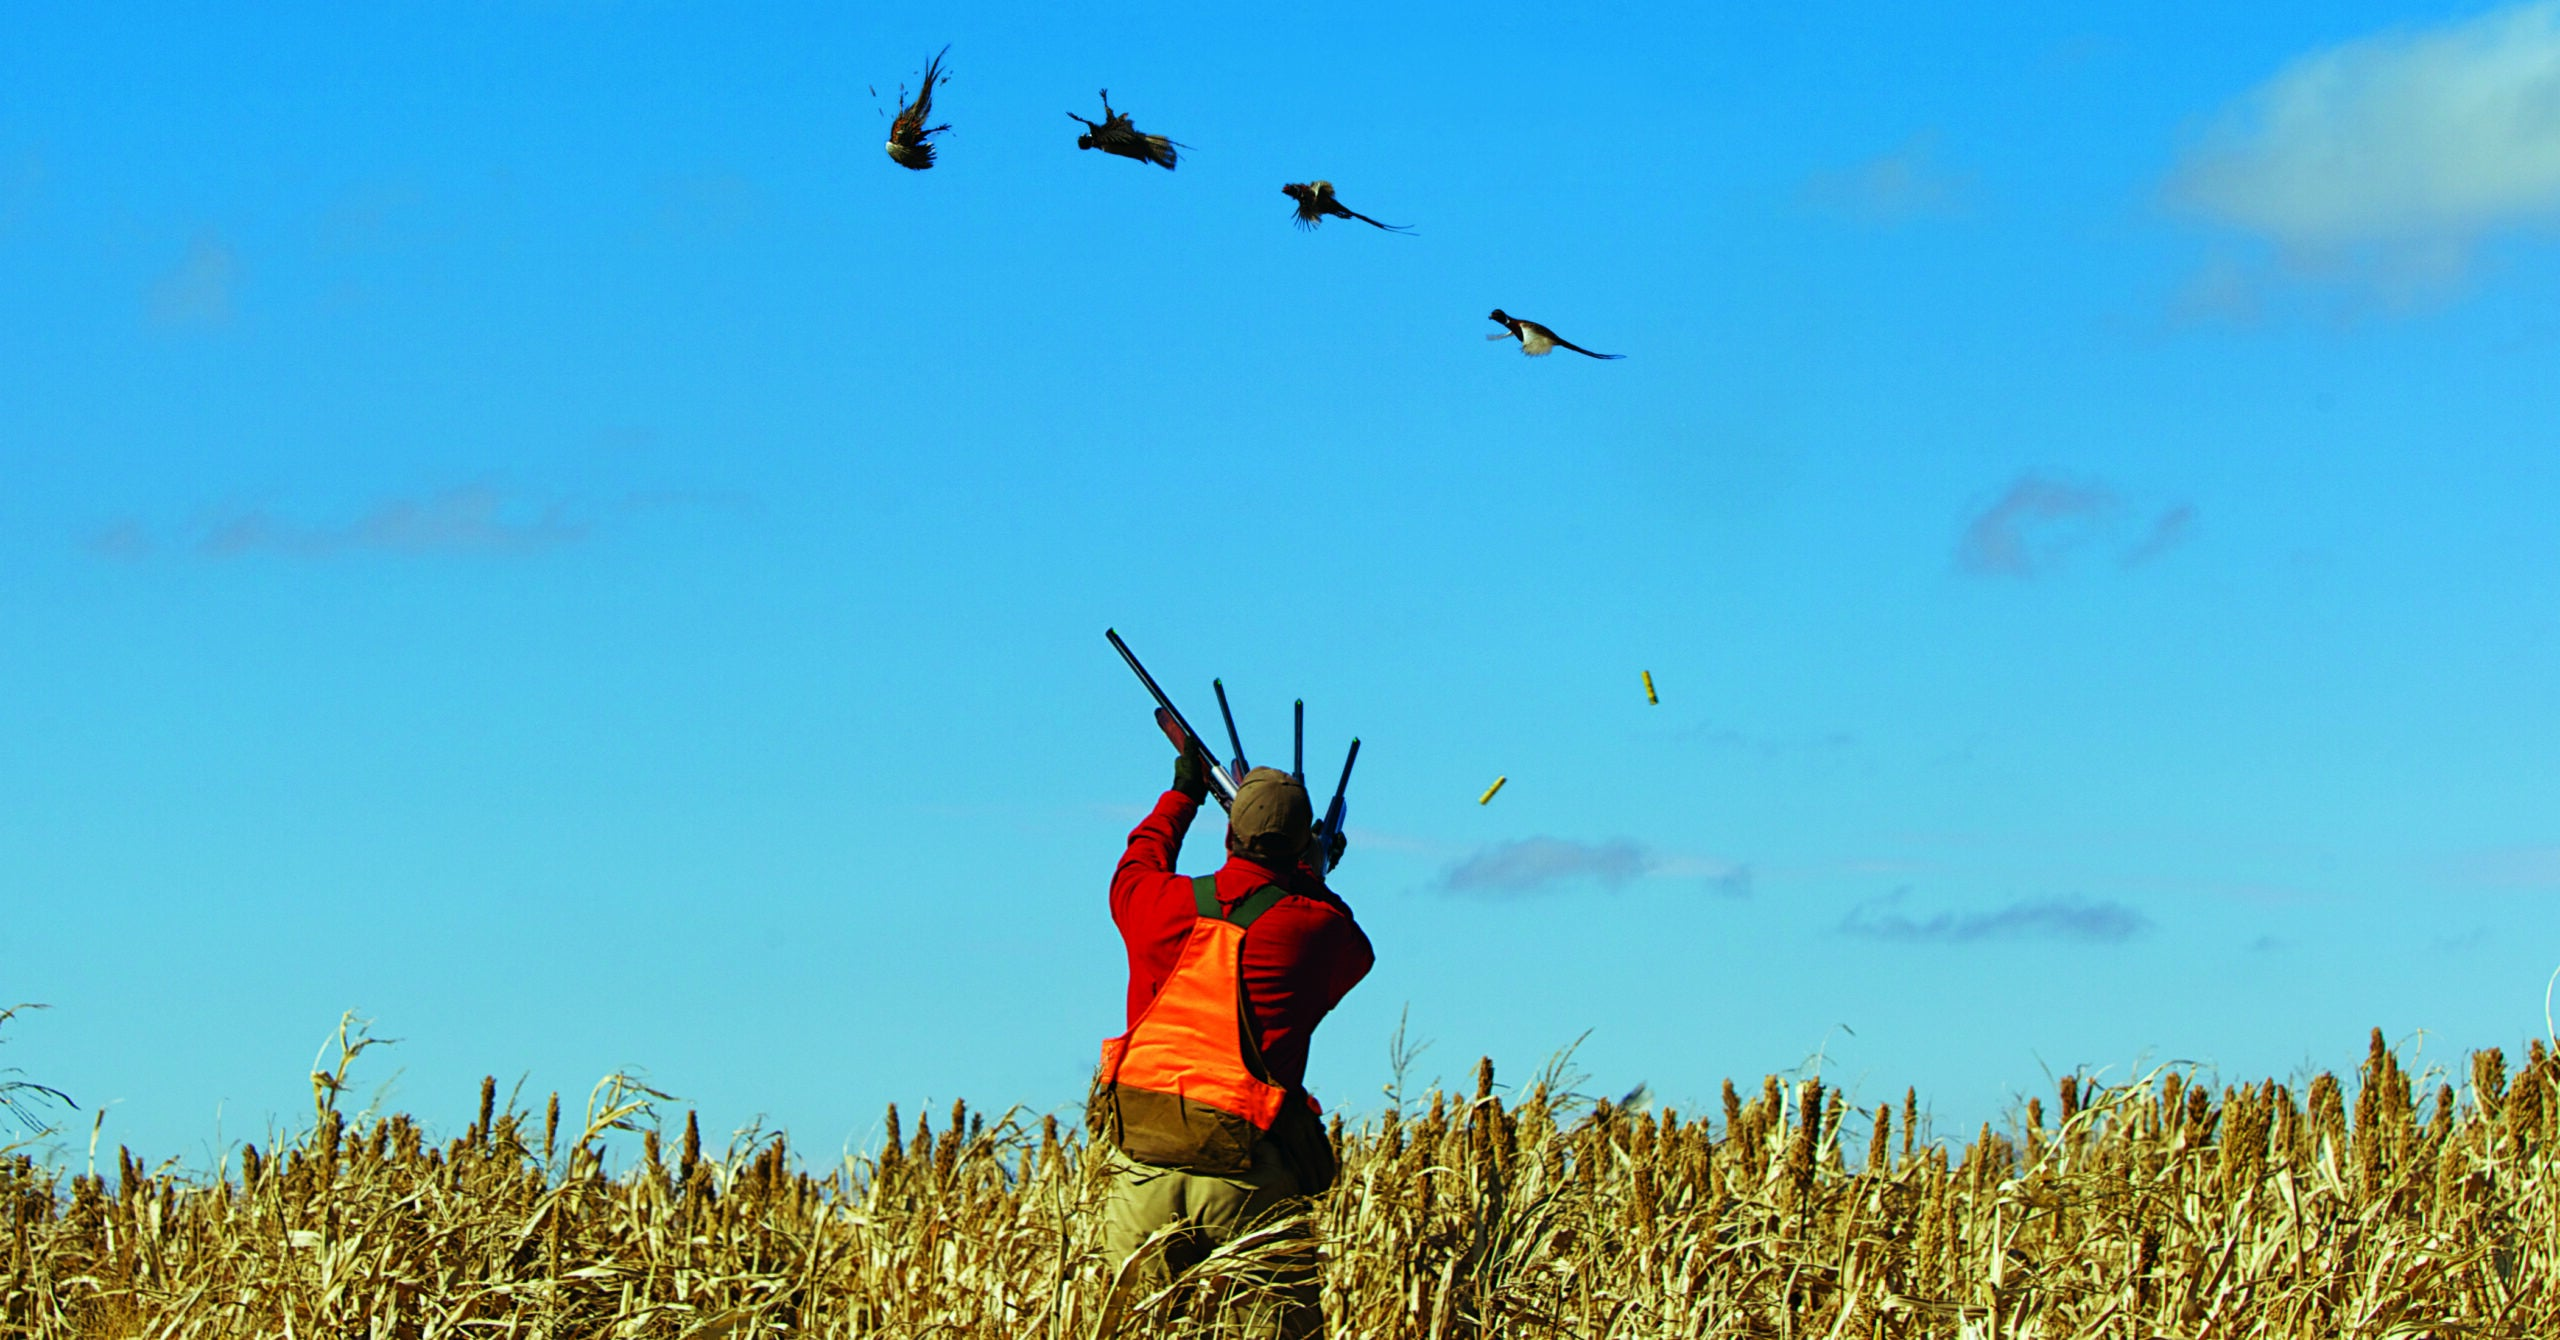 Wingshooting Skills: 6 Tips to Get Ready for Bird Season